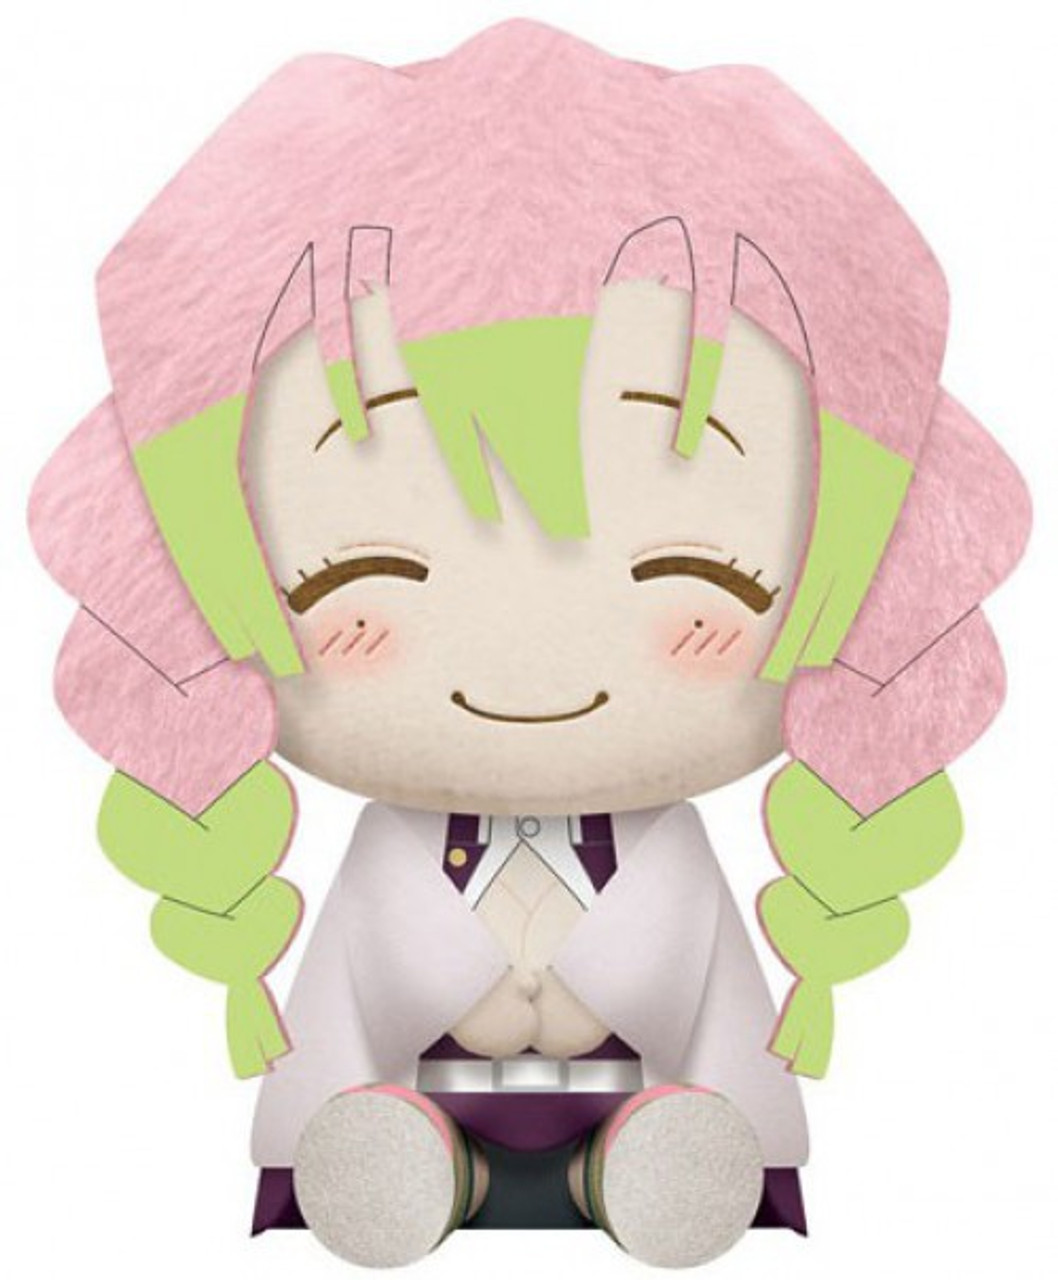 Demon Slayer Mitsuri Kanroji 8 Big Plush Surreal Entertainment Toywiz The most common mitsuri demon slayer material is plastic. banpresto